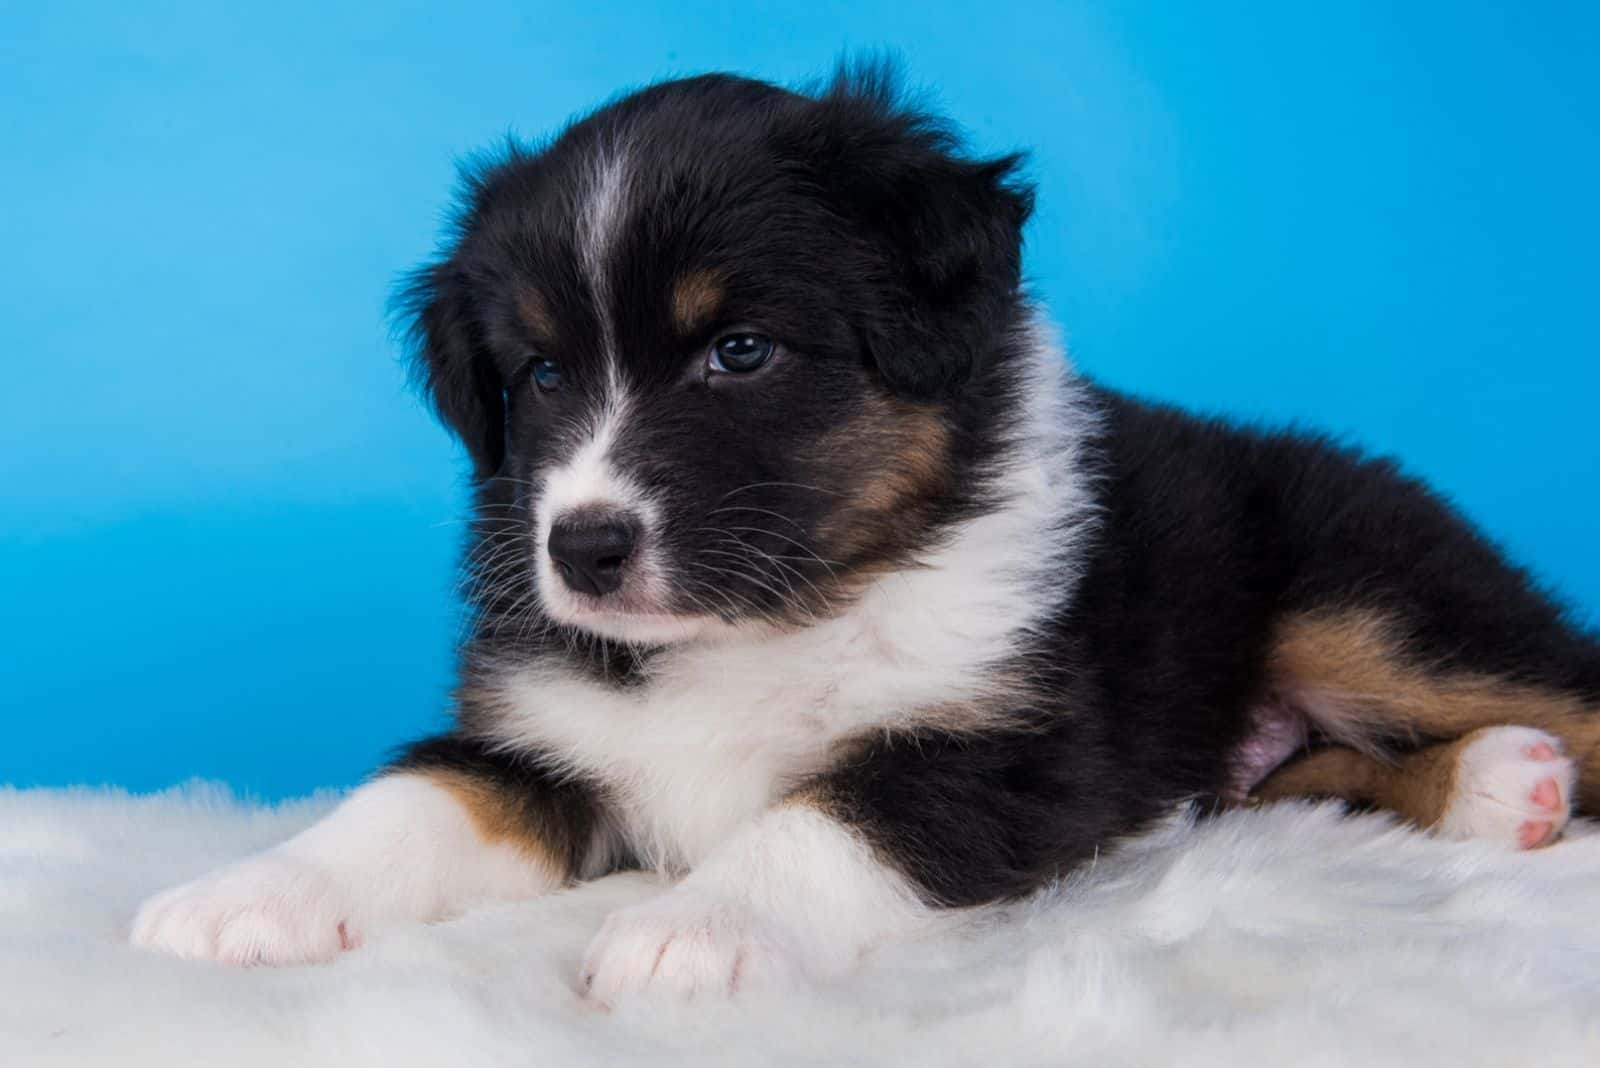 Dog with tri-color black, brown and white six weeks old, sitting on blue background.